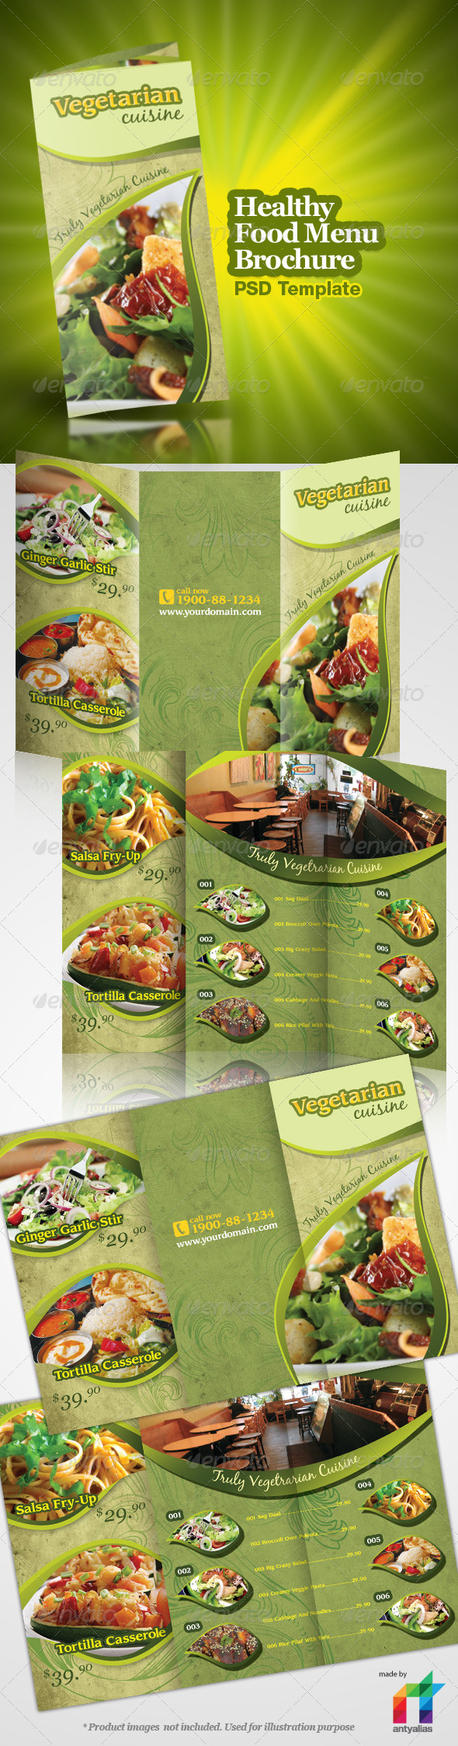 Healthy food menu brochure by antyalias on deviantart for Artistic cuisine menu